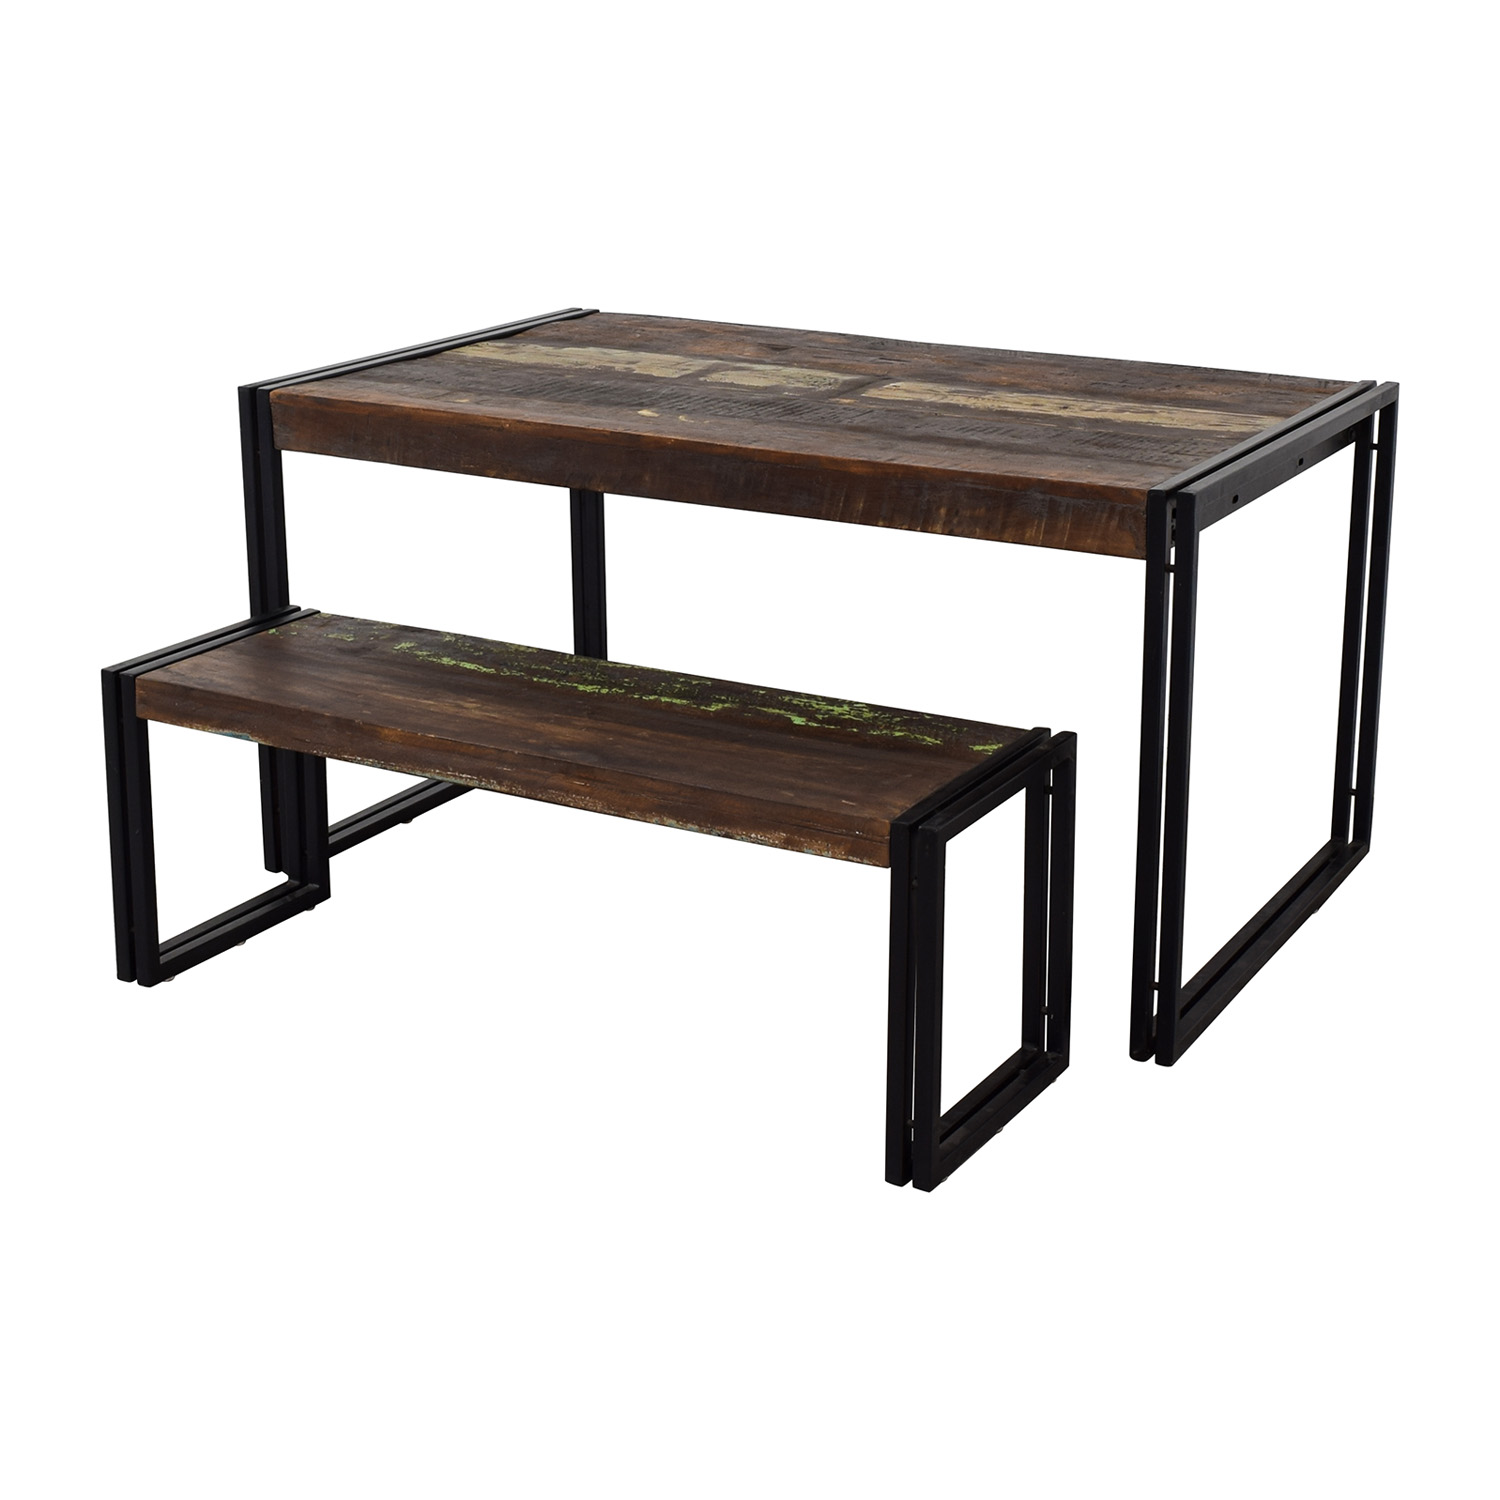 shop Timbergirl Timbergirl Solid Reclaimed Wood Dining Table With Bench online